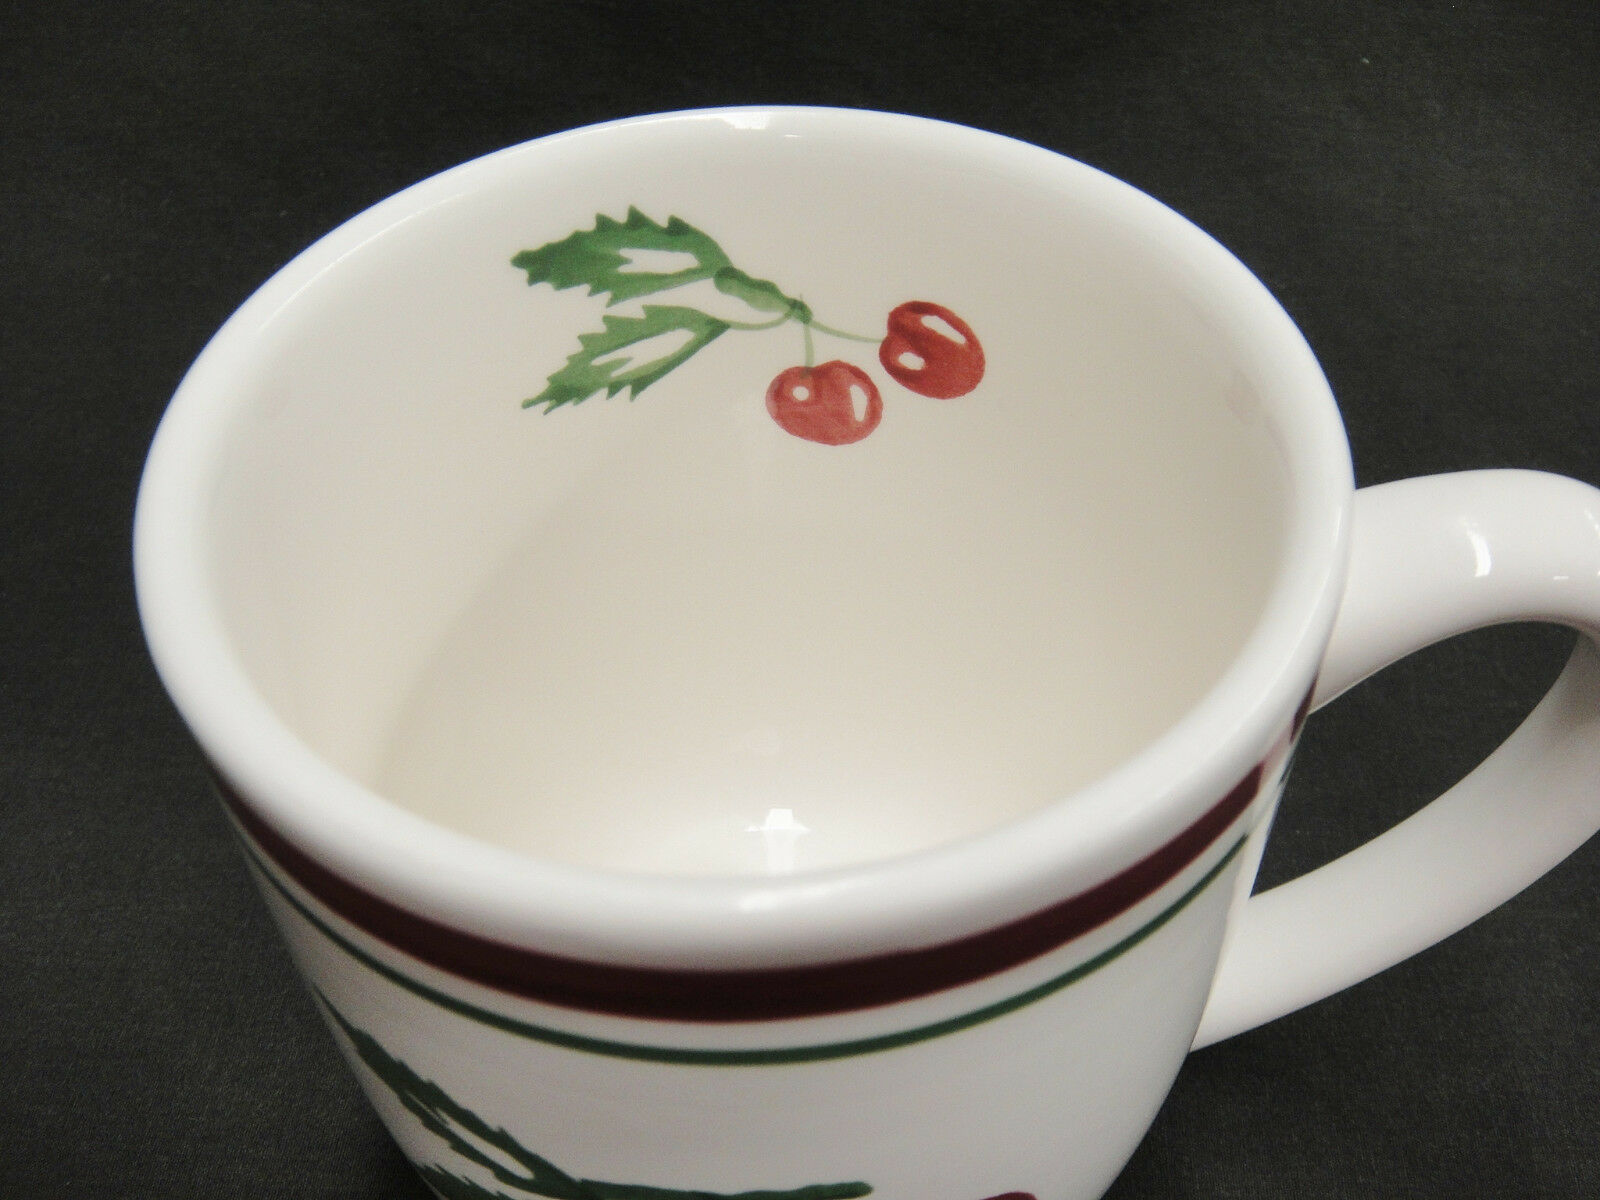 Tag Vintage Cherry Pattern Mug Red and Green Bands Cherries on Stems Leaves image 3